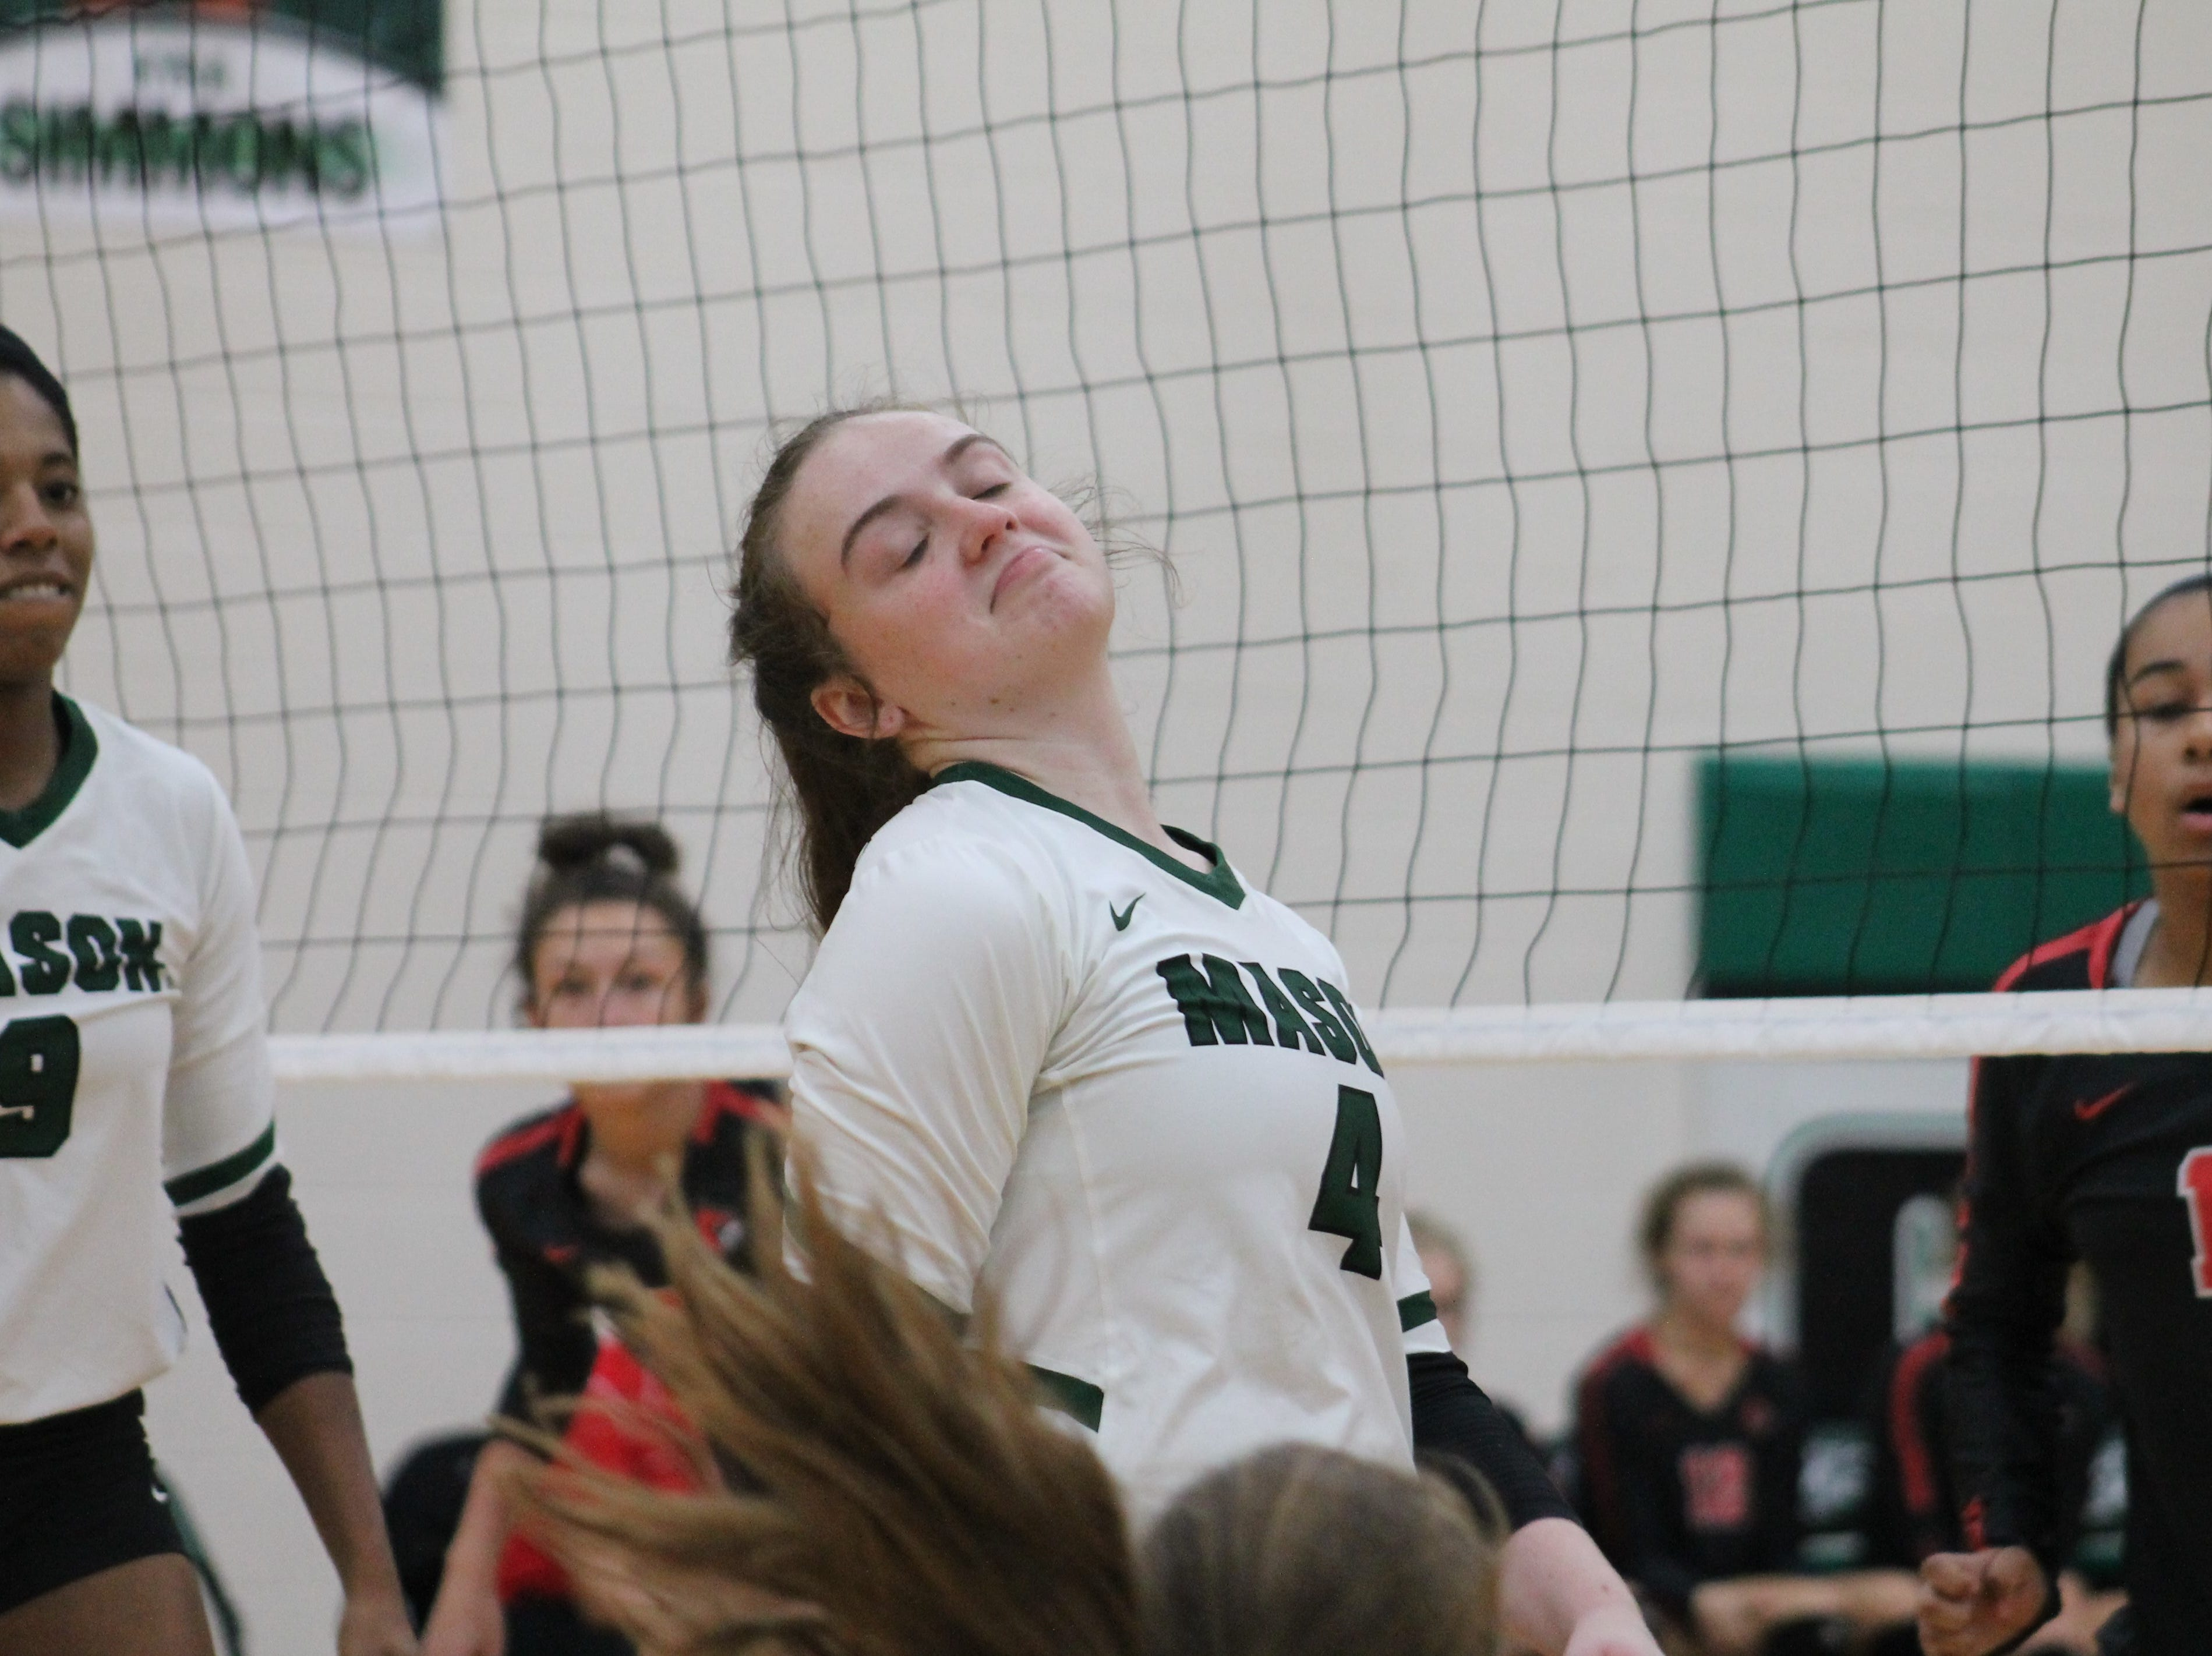 Junior setter Hannah Simmons is impressed with Mason's effort